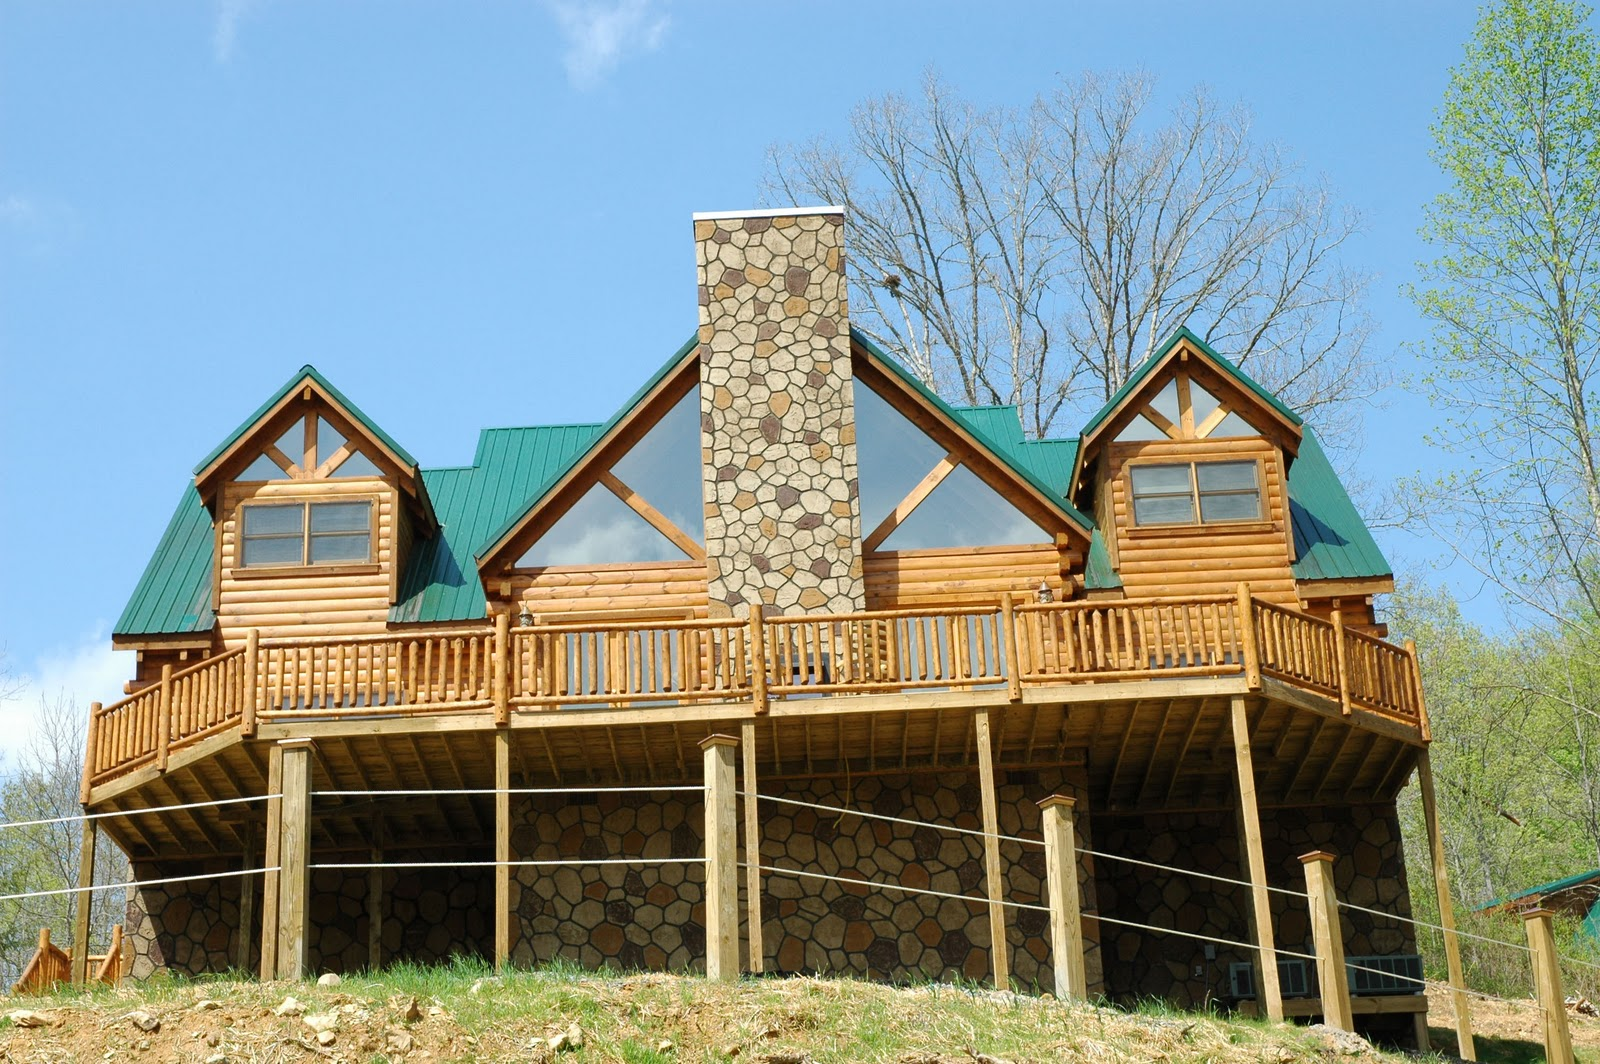 unitedstatesofamerica luxury knoxville tennessee simply south rental cabins breathtaking smoky sevierville retreats cabin mountain great natural